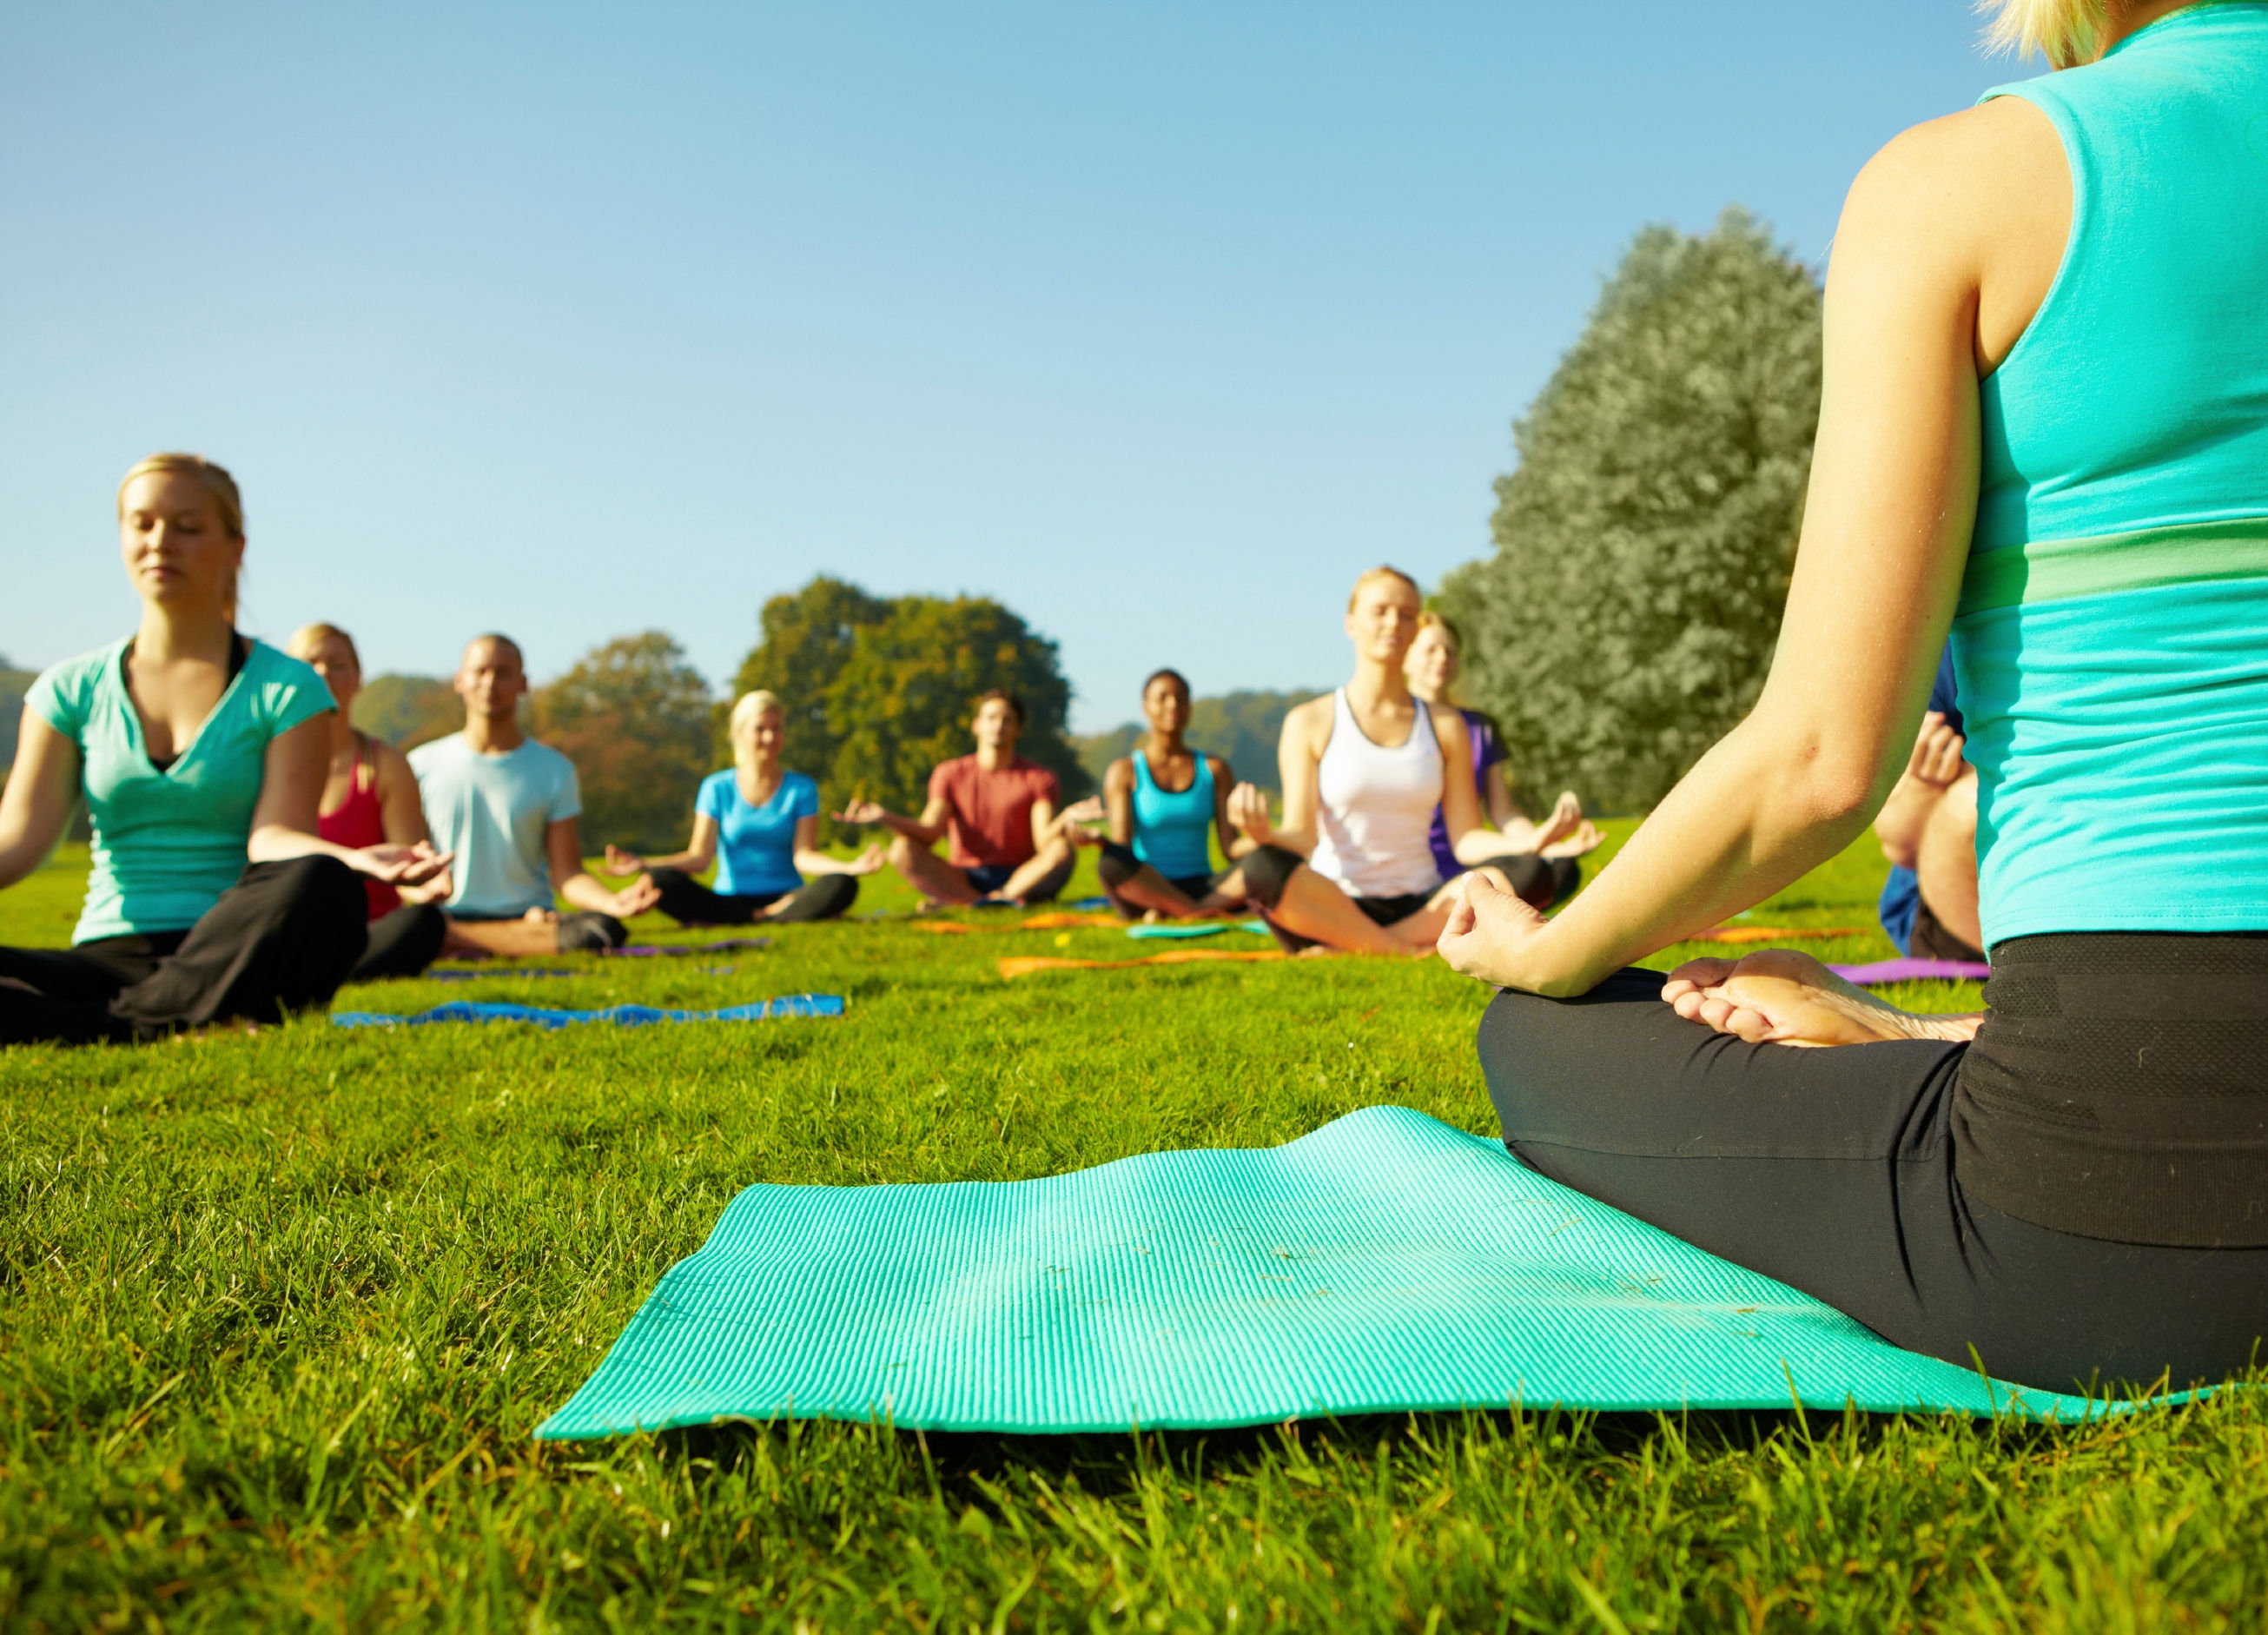 Ground view of a group of people attending a yoga class outdoors